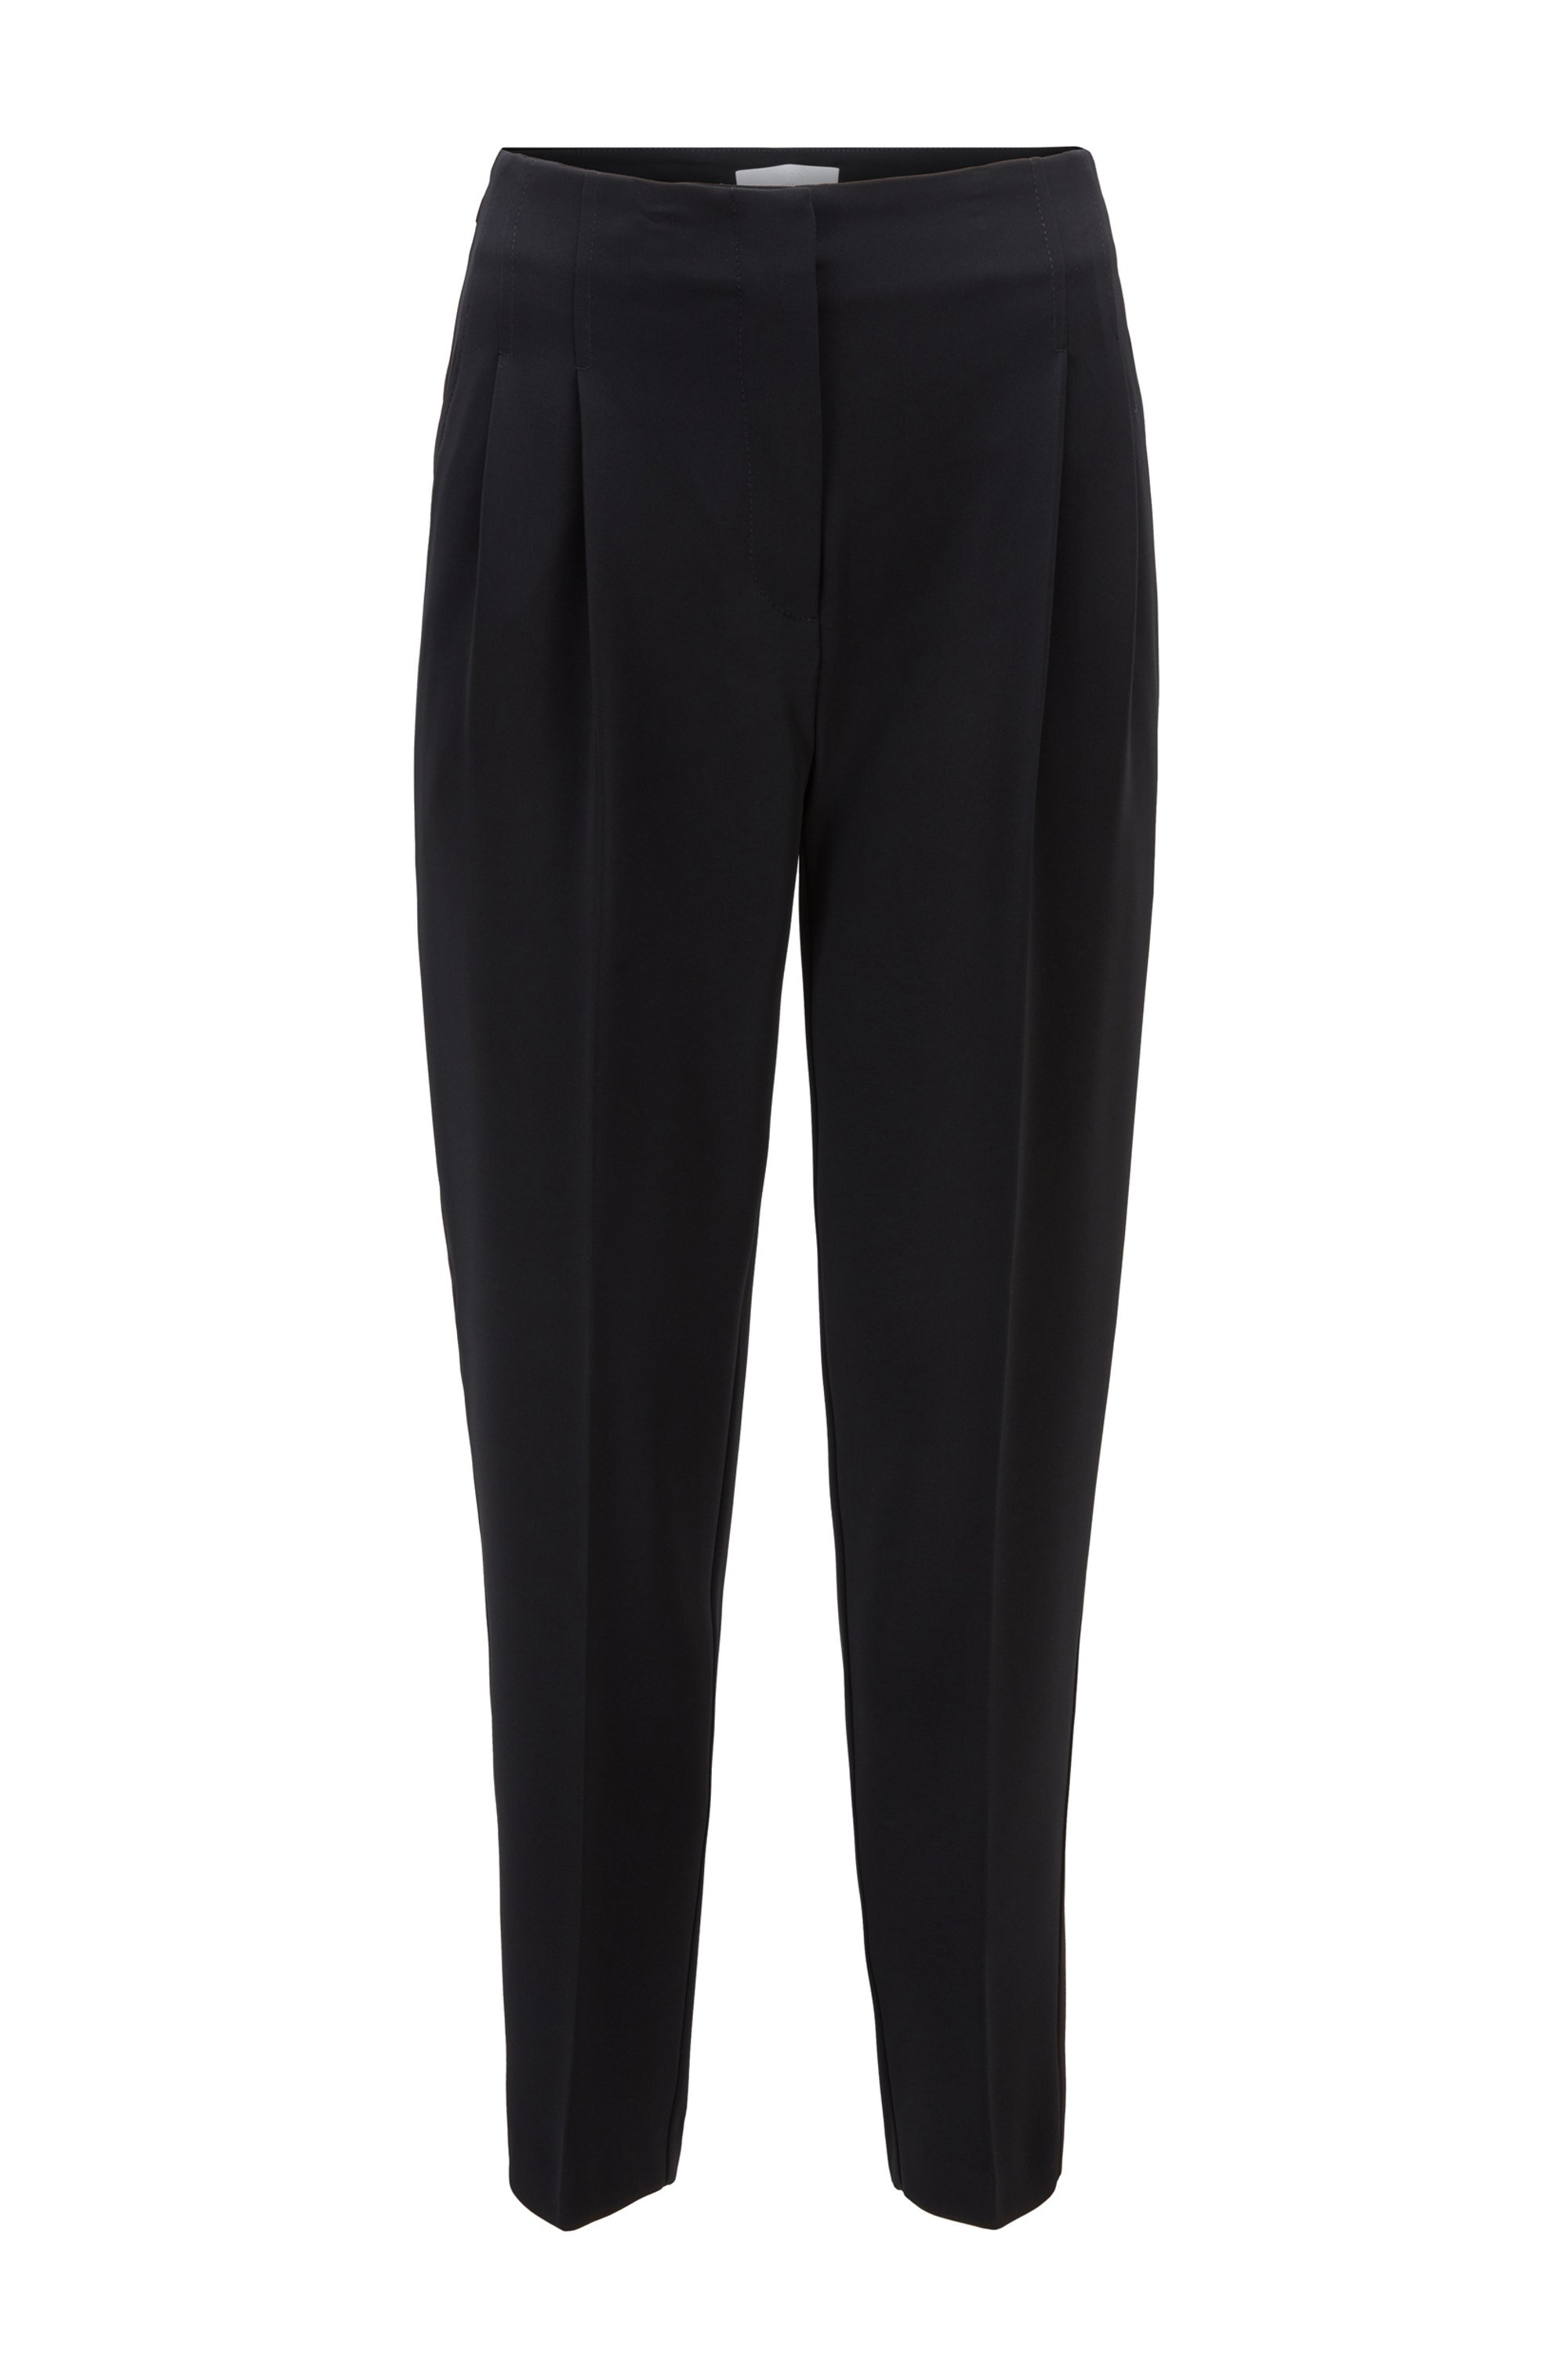 High-waisted regular-fit trousers in Japanese crinkle crêpe, Black